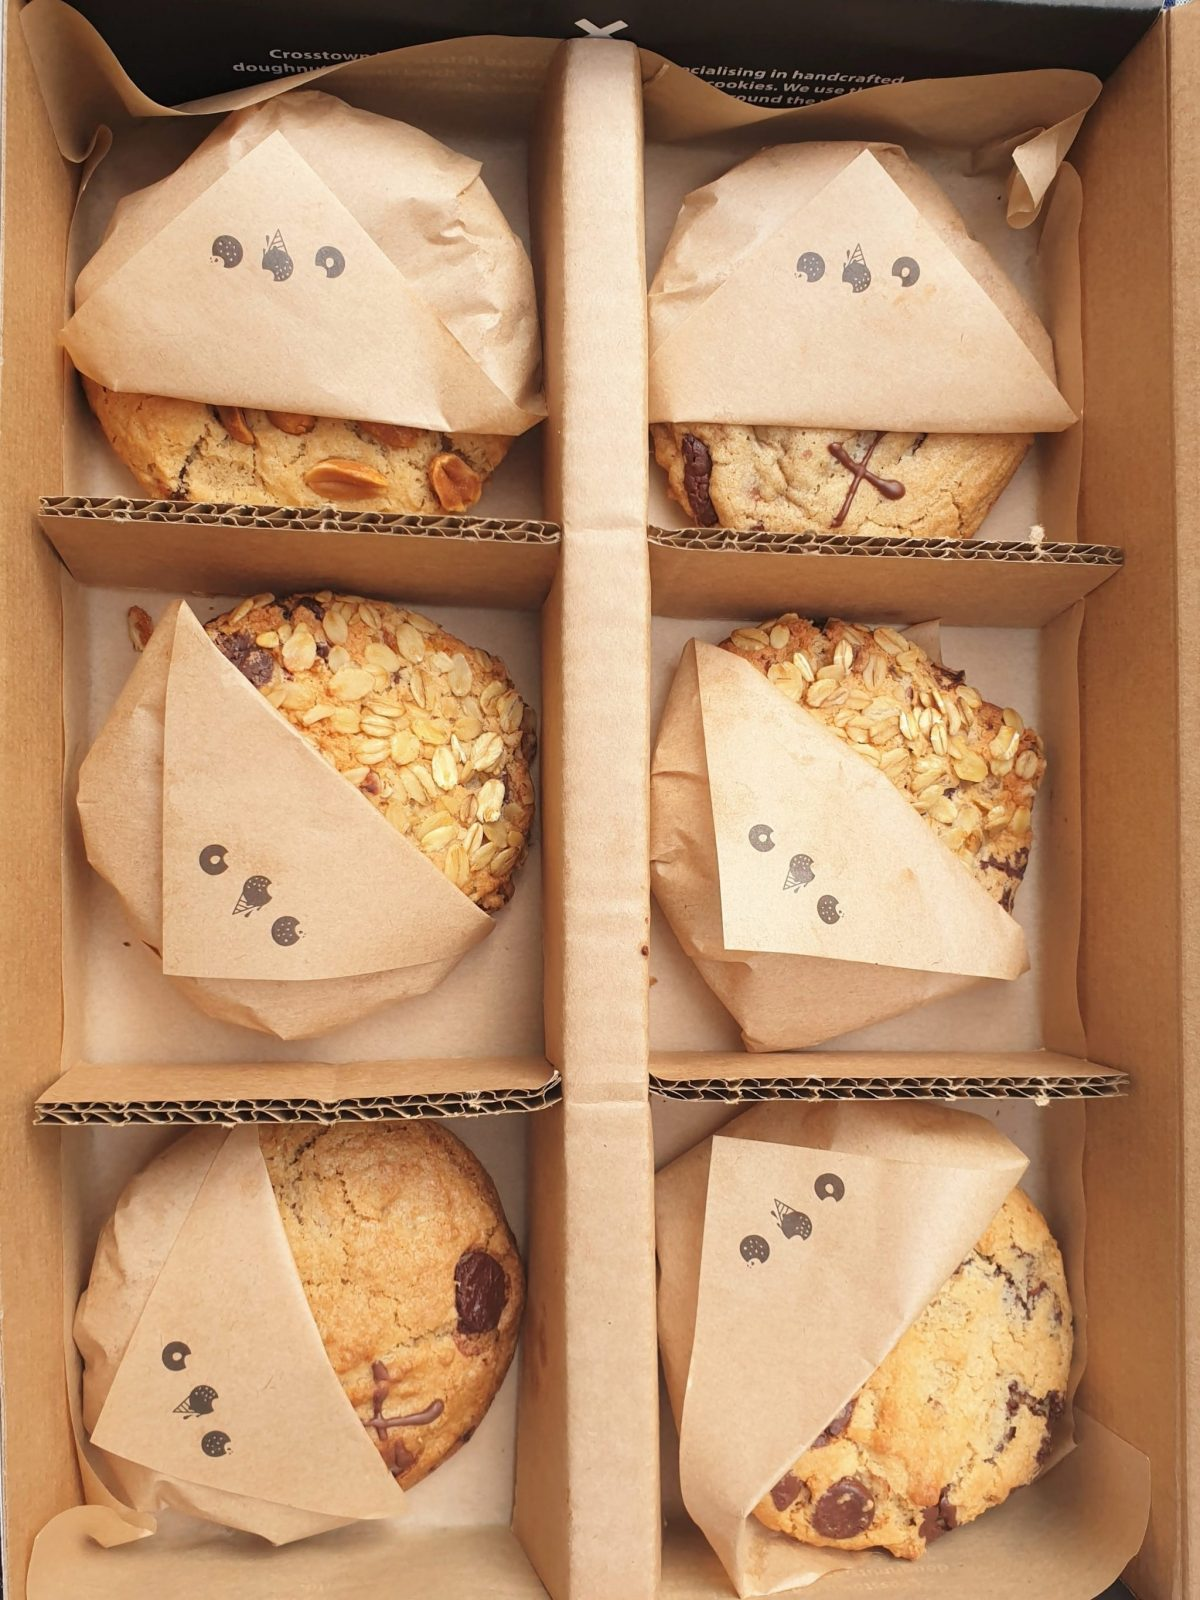 Crosstown speciality cookies